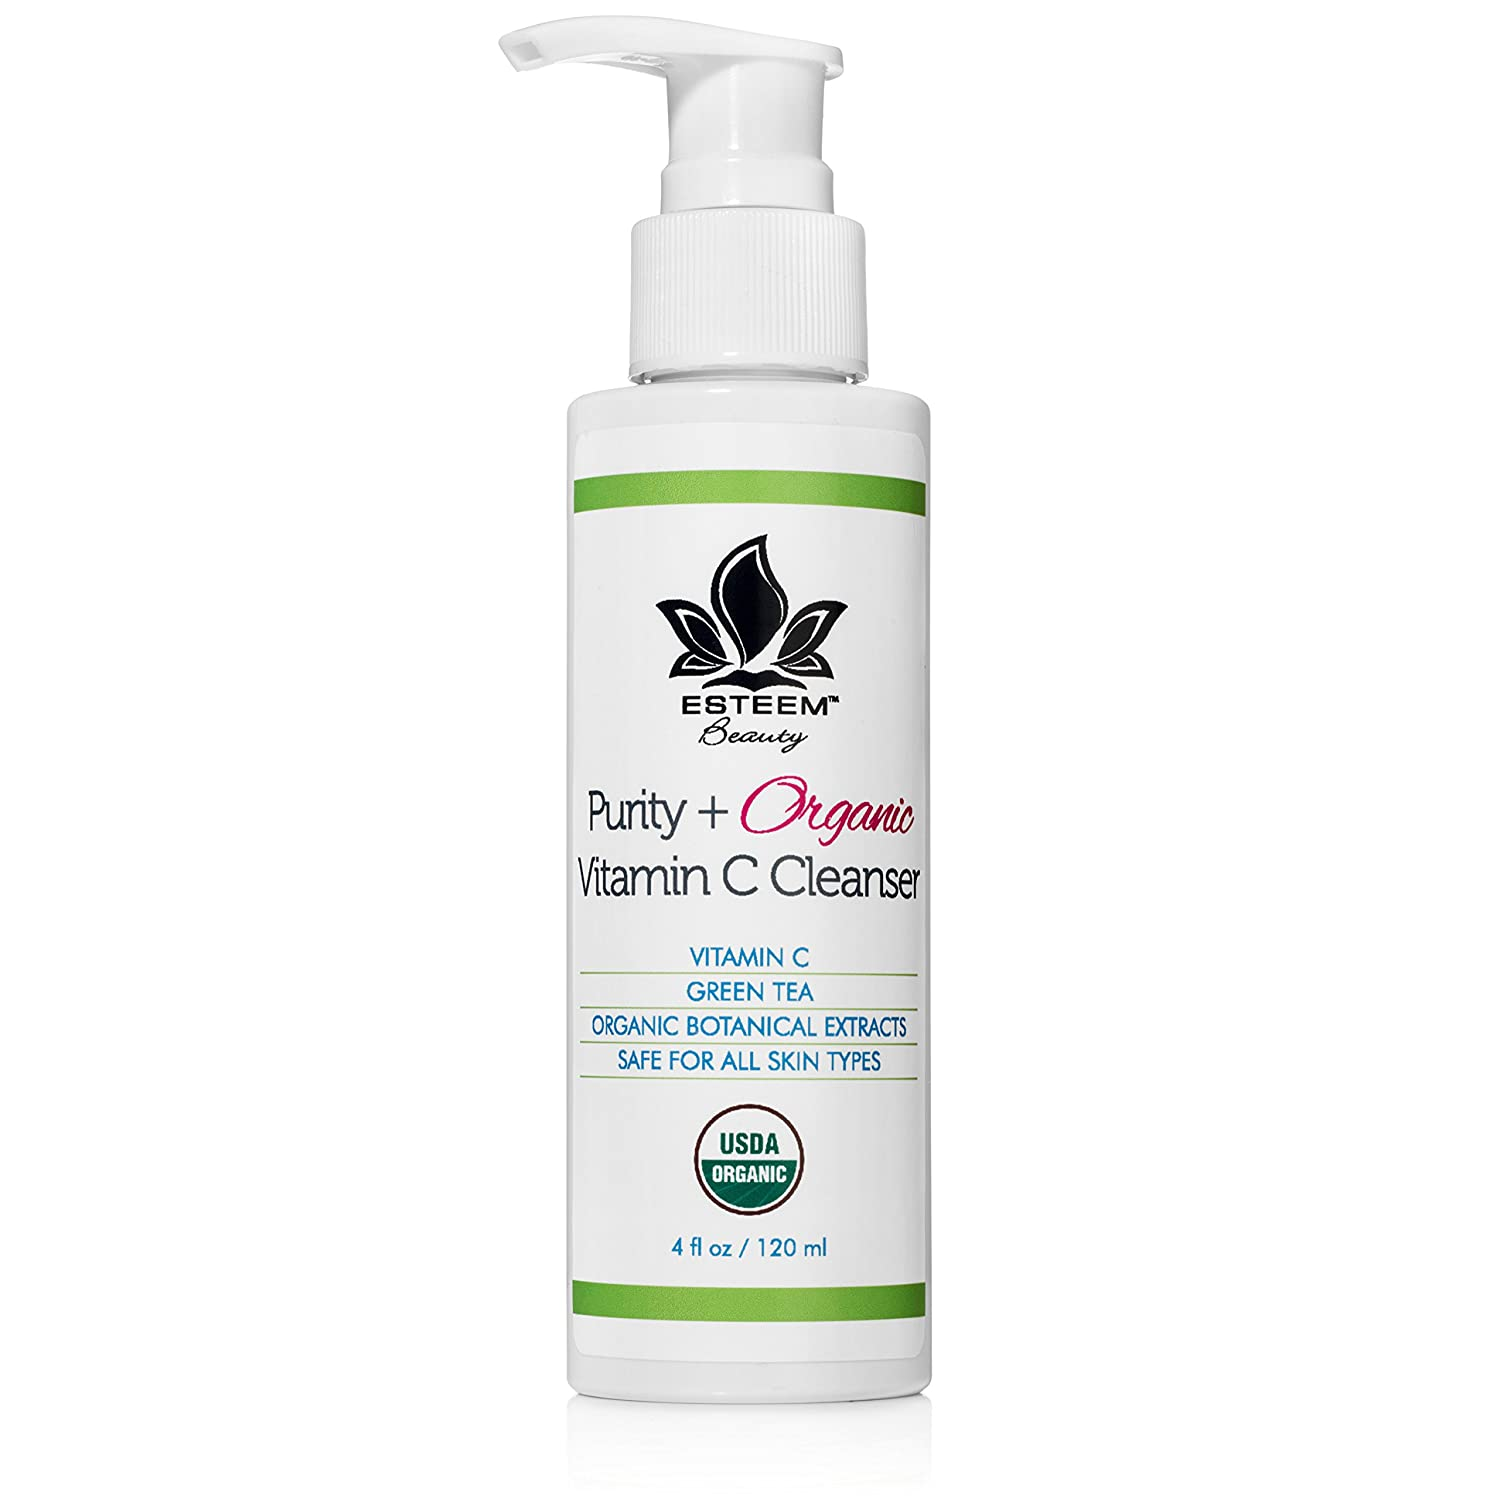 Purity + Organic Vitamin C Face Wash - Anti Aging Facial Cleanser   Green Tea   Aloe Vera   Lemon Peel Oil   Sulfate Free   Paraben Free   18 Essential Oils & Botanical Extracts